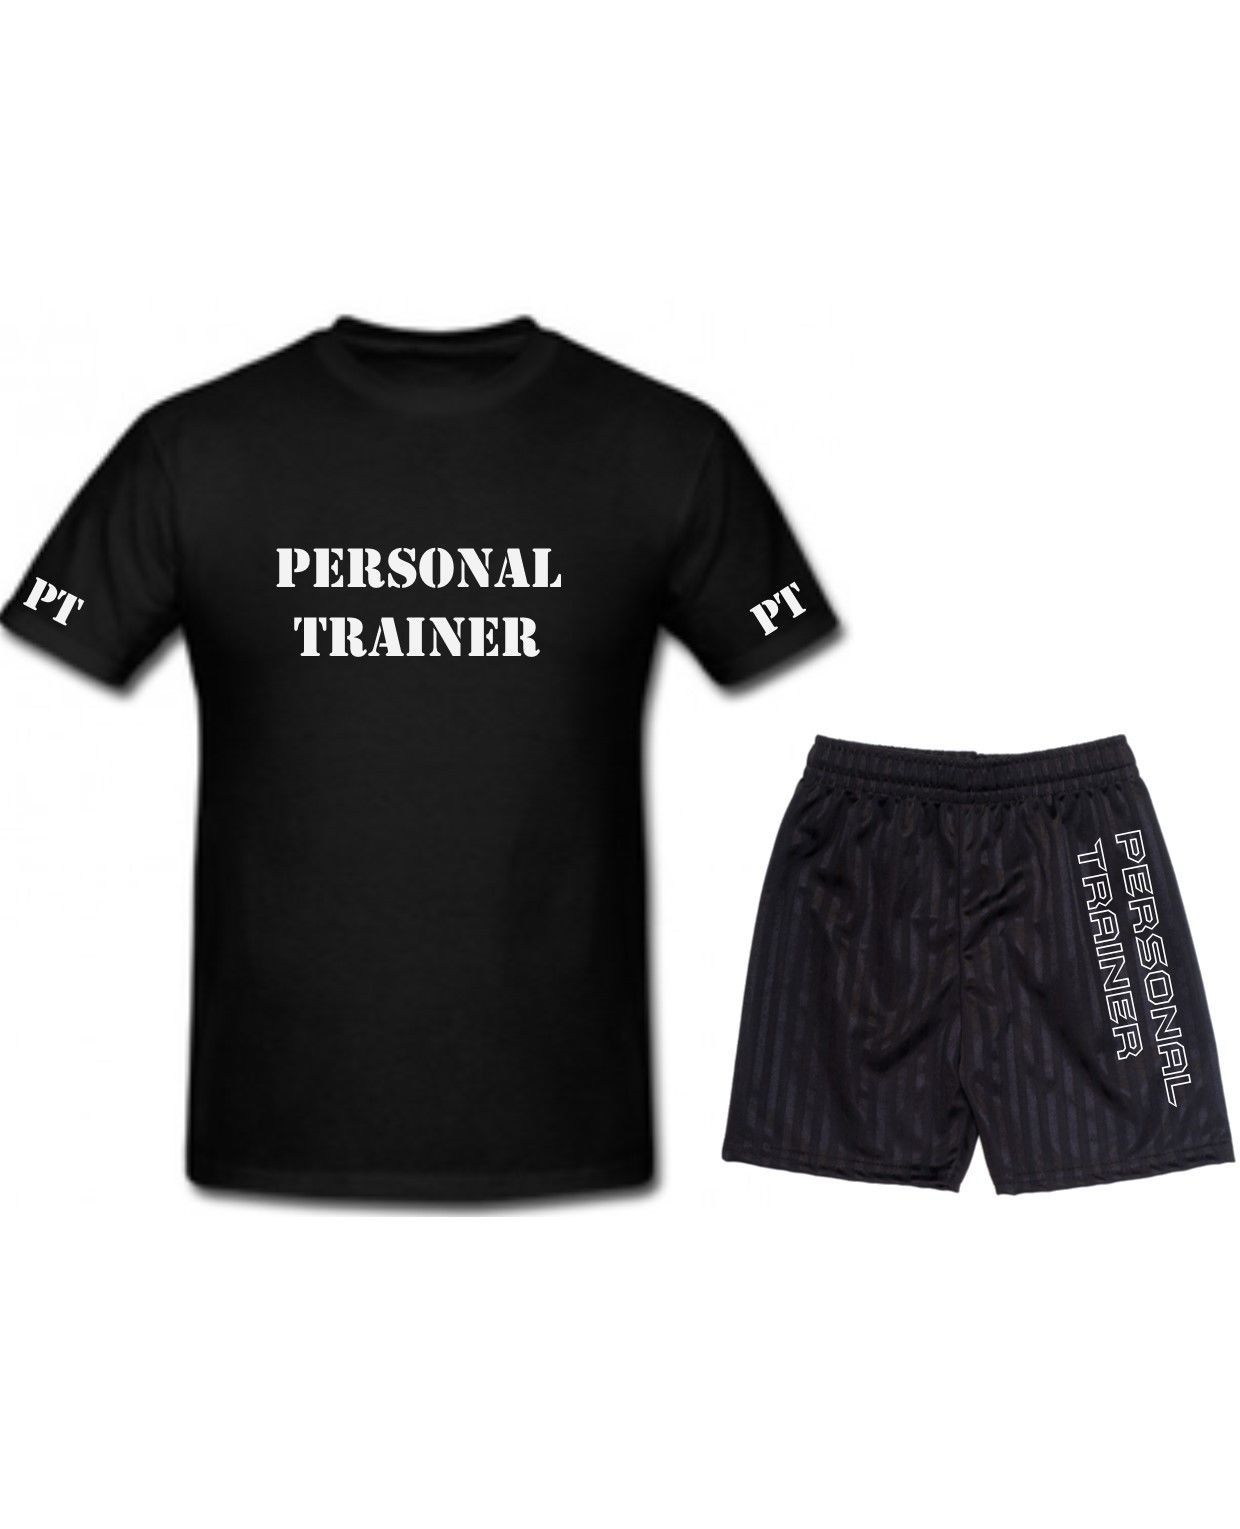 T Trainer Printed Set Fitness Shirt Shorts Gym Workout Personal Pt j34RA5L